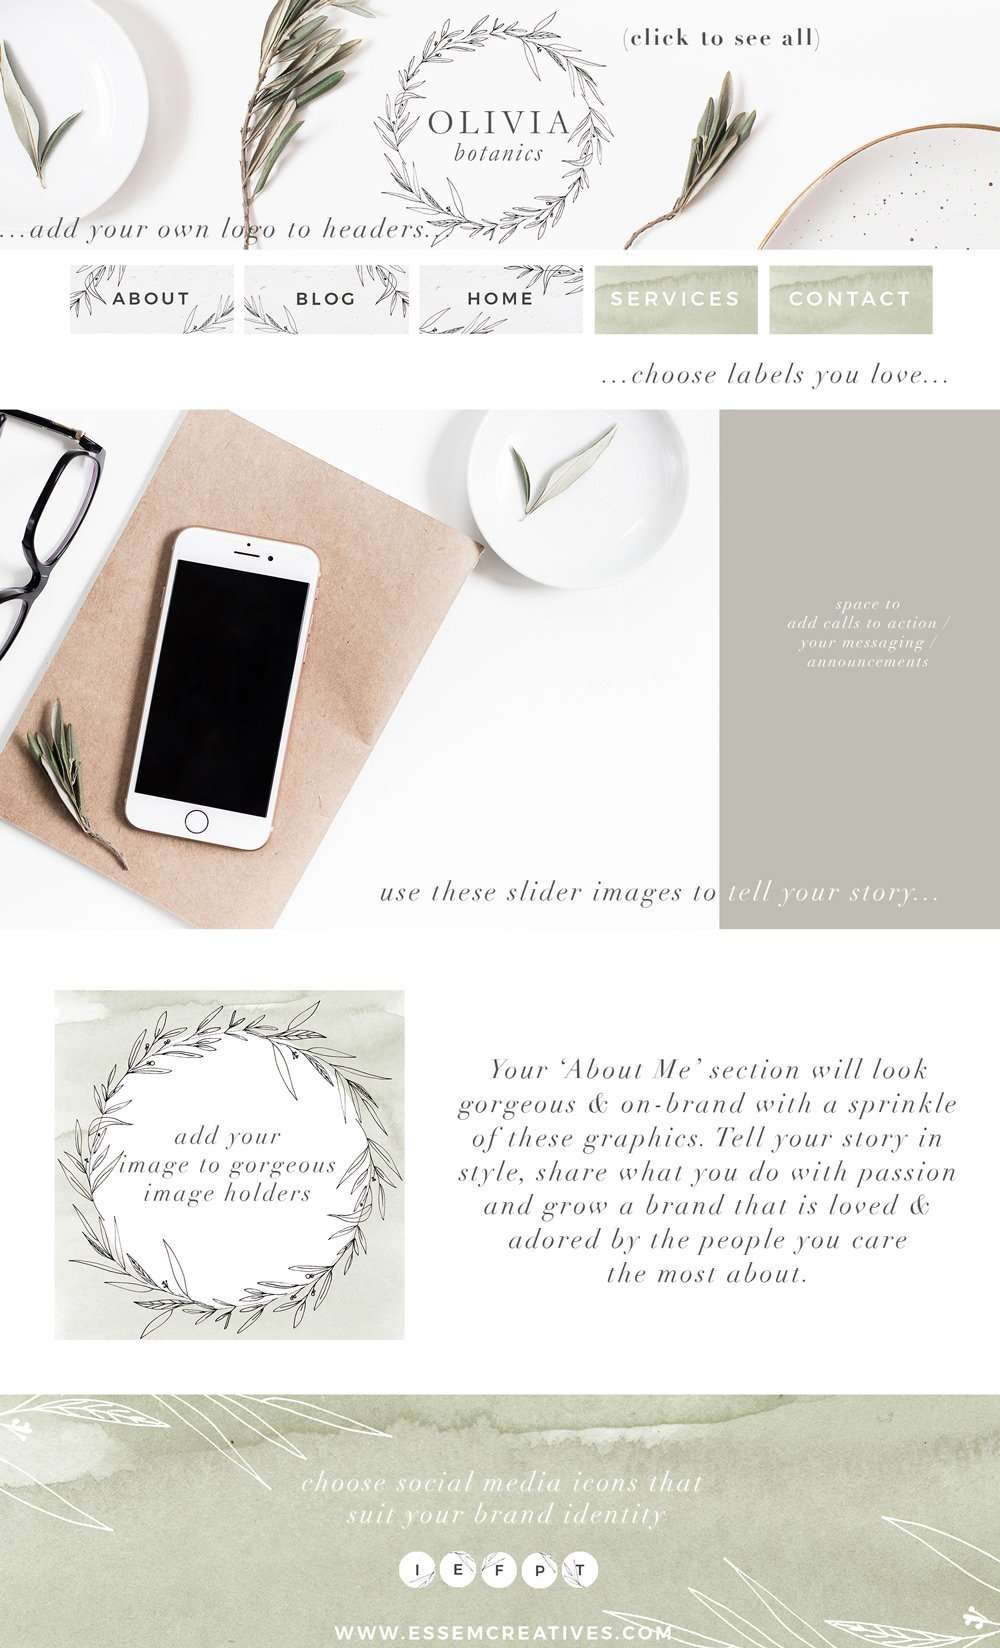 Are you starting a new blog and want to get the perfect neutral high end minimal branding done just right? Then look no further. This BOTANIC Neutral Website Blog Branding Kit is perfect for bloggers and small businesses - includes blog headers banners, social media icons, custom buttons, slider images and more. Watercolor accents and greenery accents included. Click to see more>>